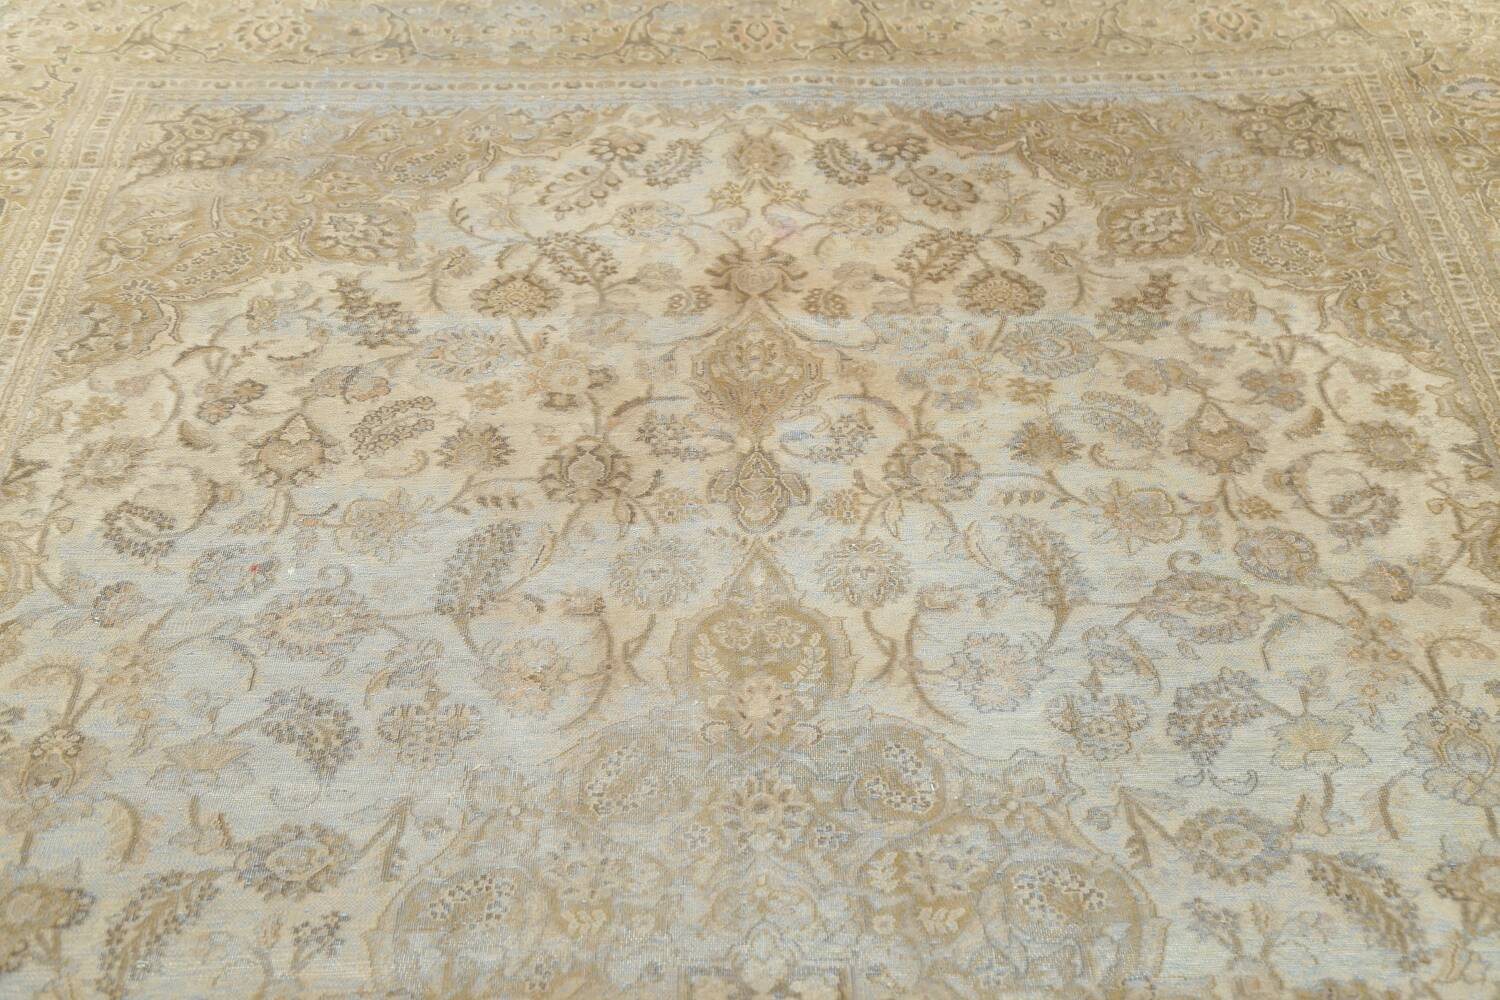 Muted Distressed Antique Kashan Persian Area Rug 7x10 image 17